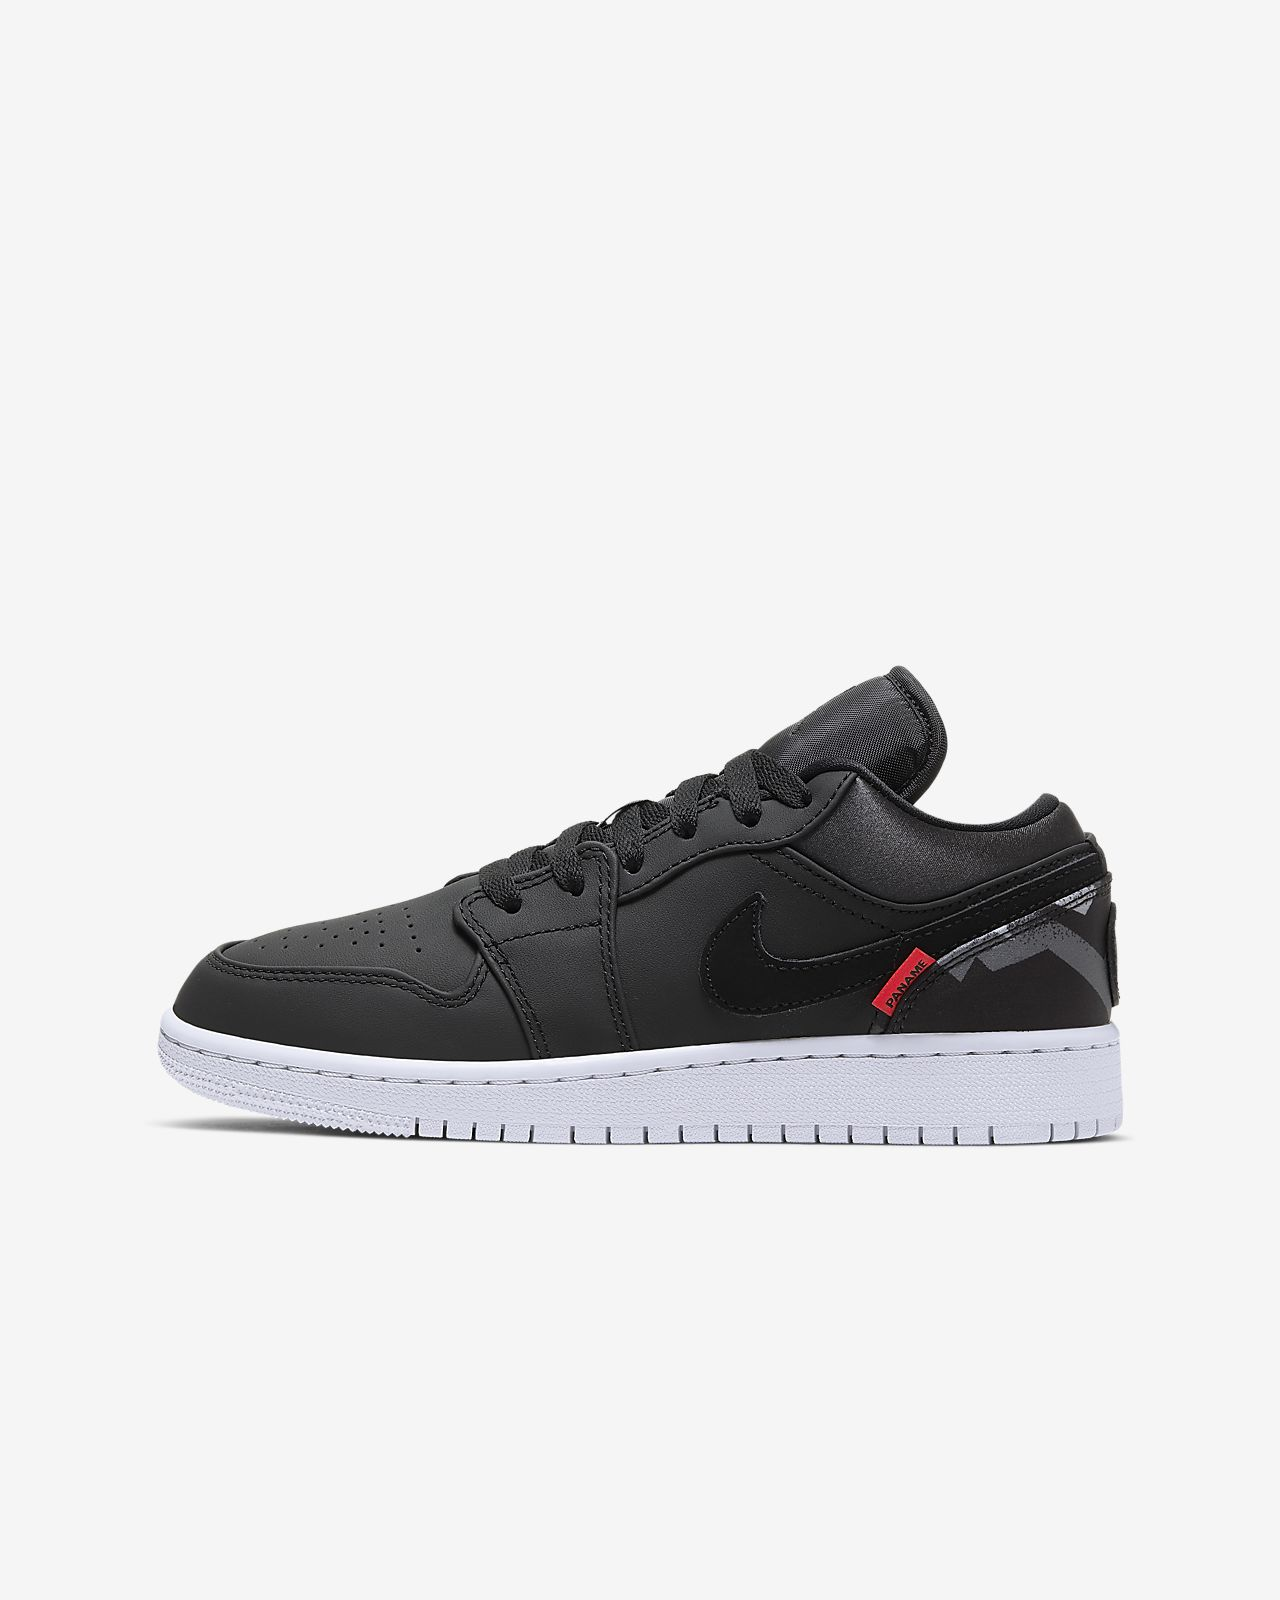 Air Jordan 1 Low Paris Saint-Germain Big Kids' Shoe